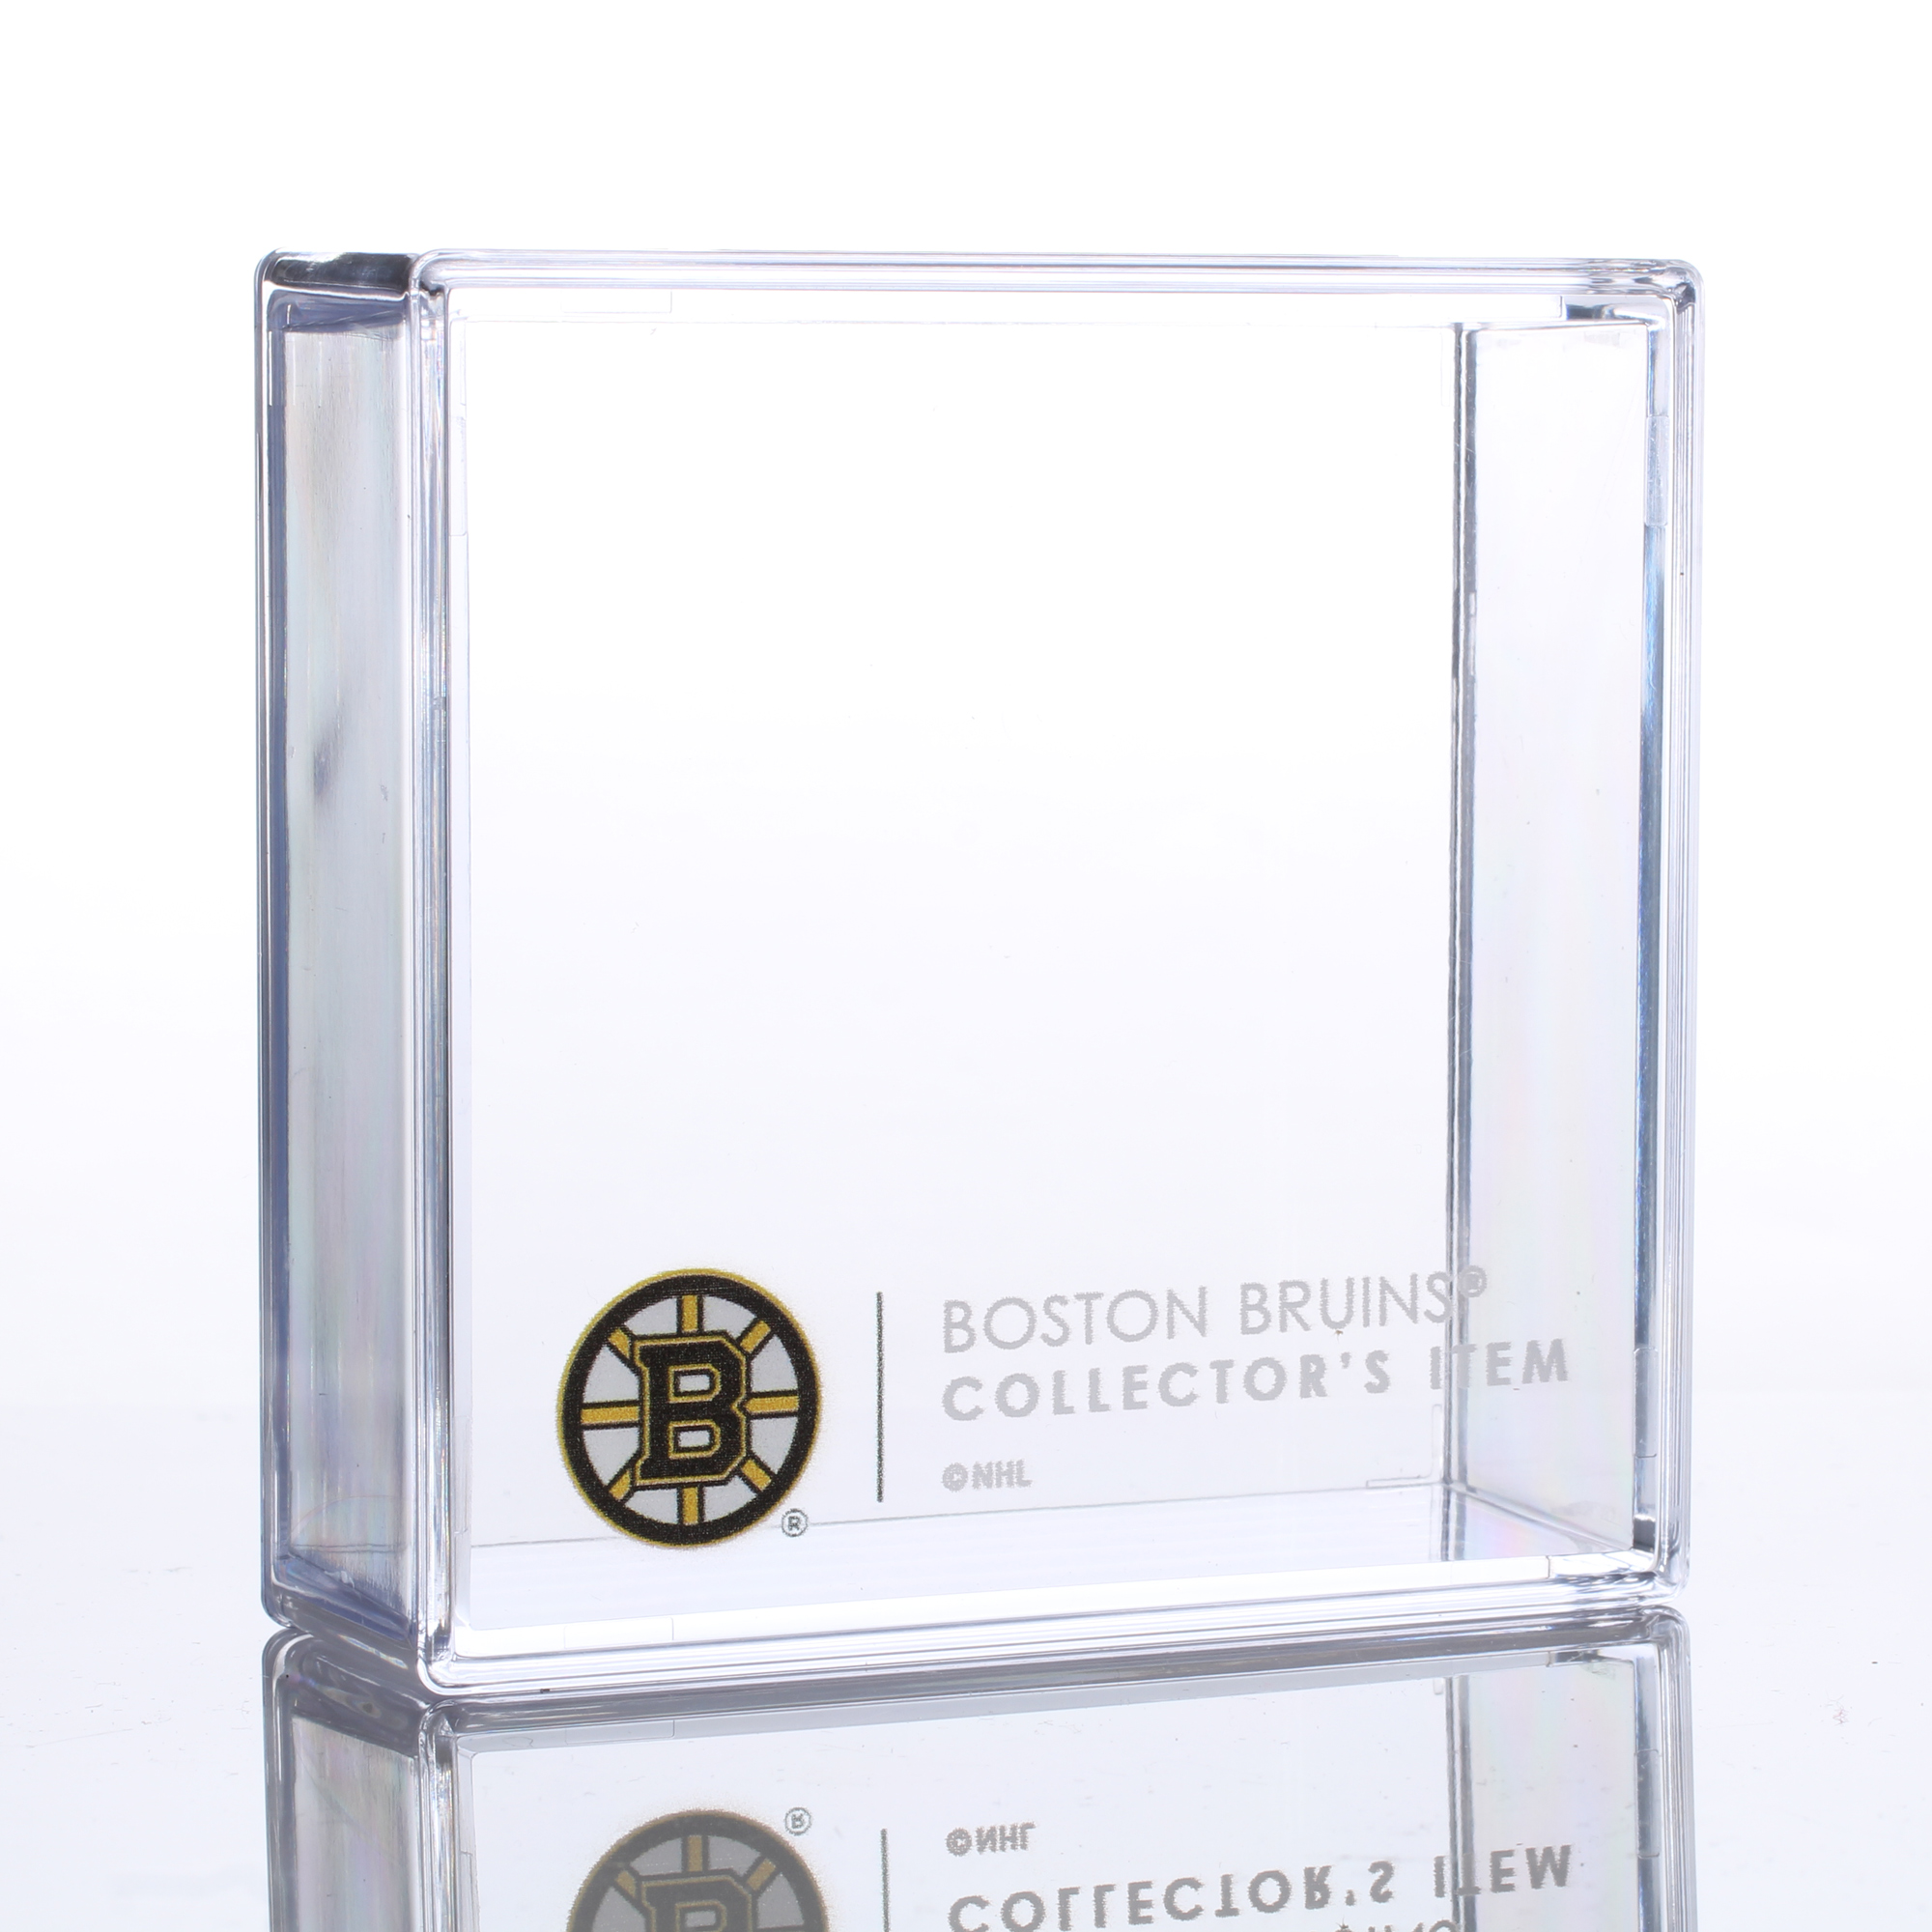 Boston Bruins Sher-Wood Puck Holder Cube - No Size